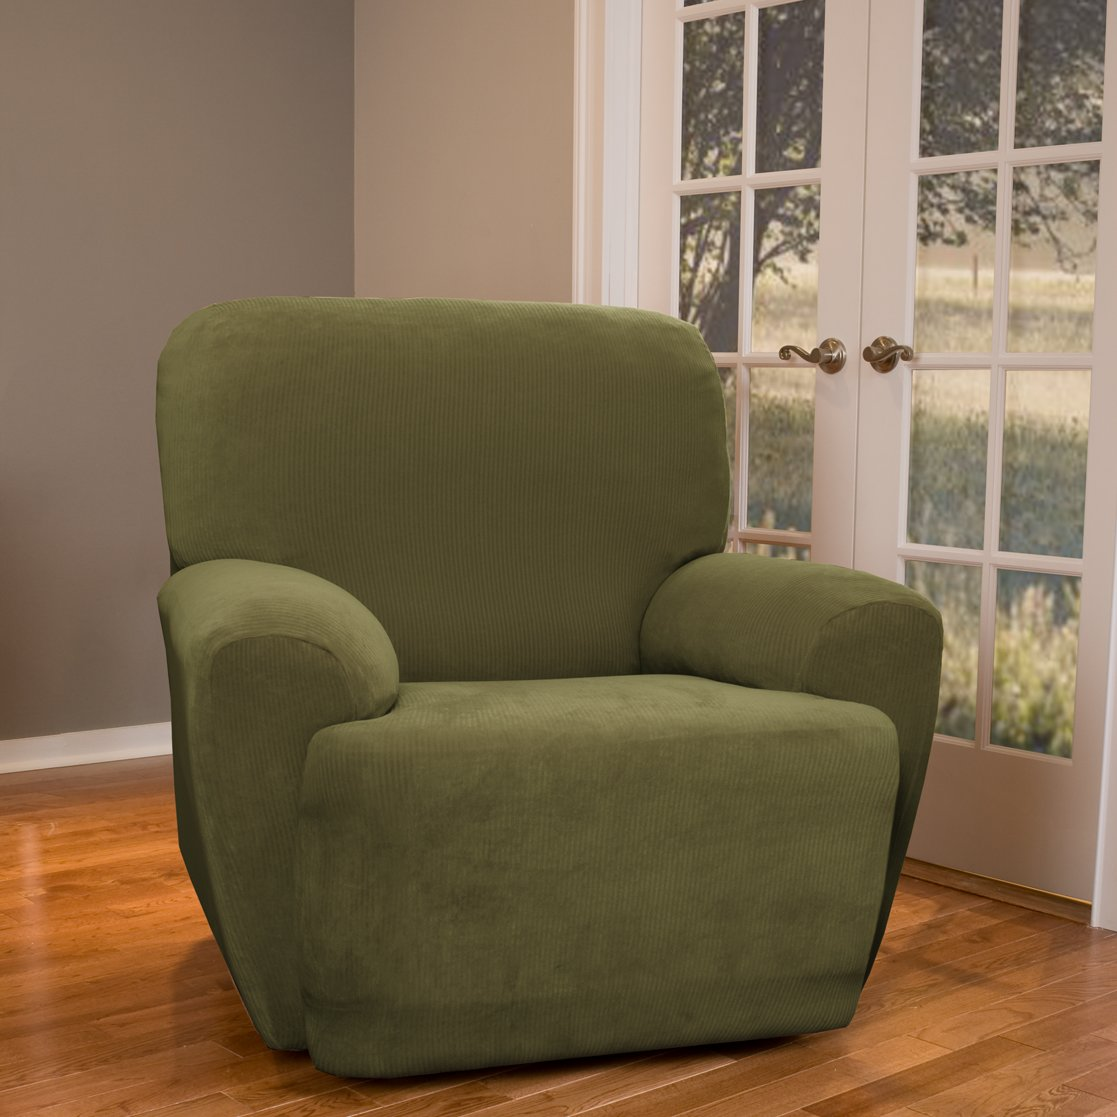 Lazy Boy Recliner Covers | Stretch Recliner Chair Covers | Recliner Covers